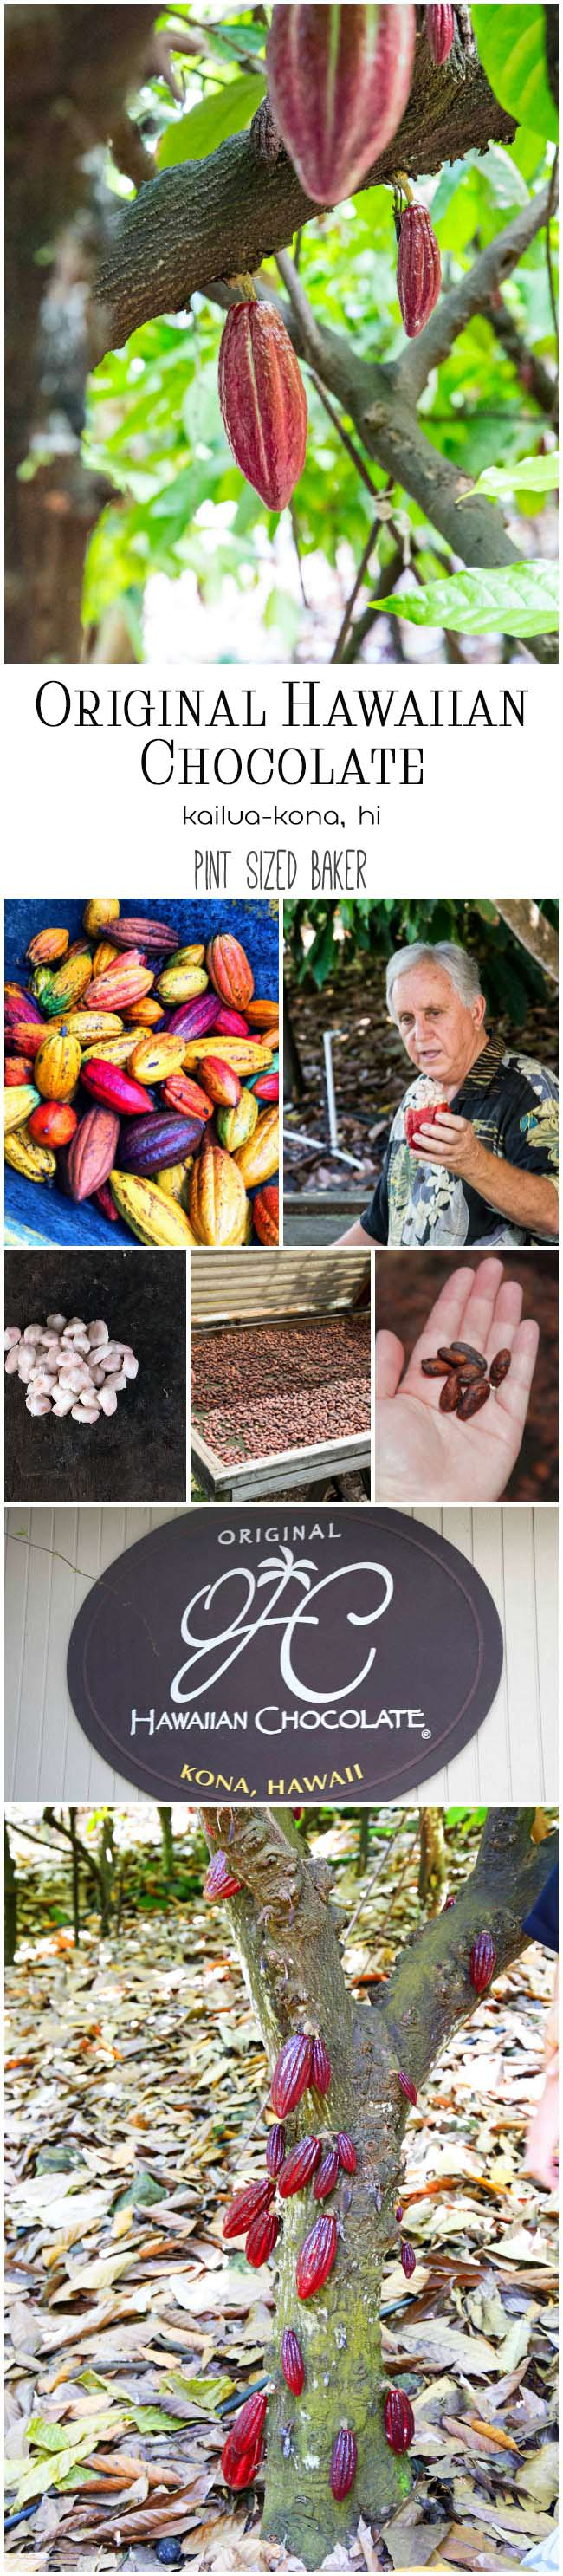 Ever see Cocoa Pods growing on a tree? It's a truly unique experience to explore the only chocolate farm in the United States. Take a leisurely afternoon to explore the Original Hawaiian Chocolate Plantation.